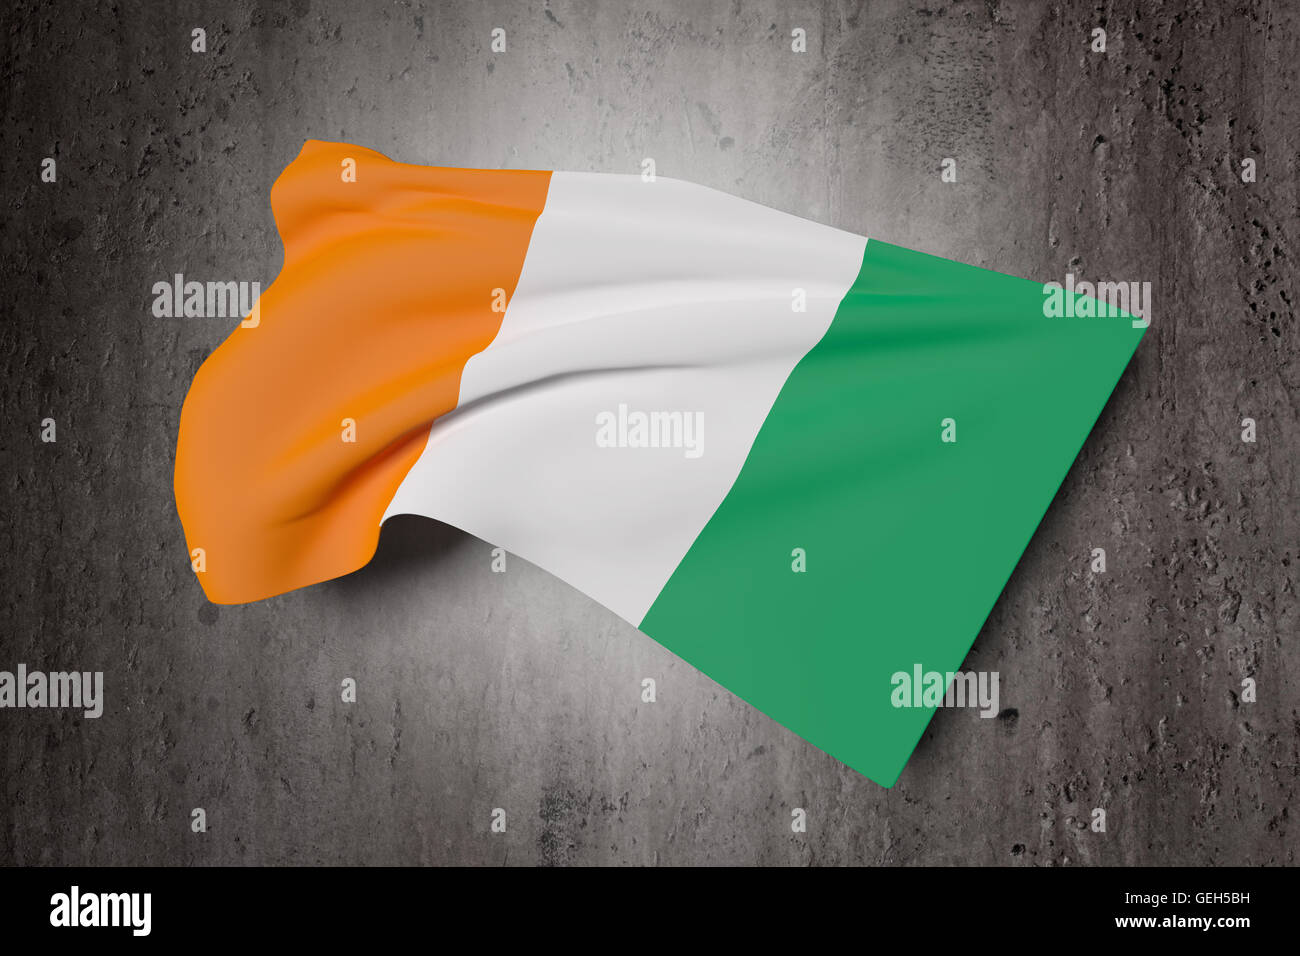 3d rendering of ivory coast flag waving on a dirty background